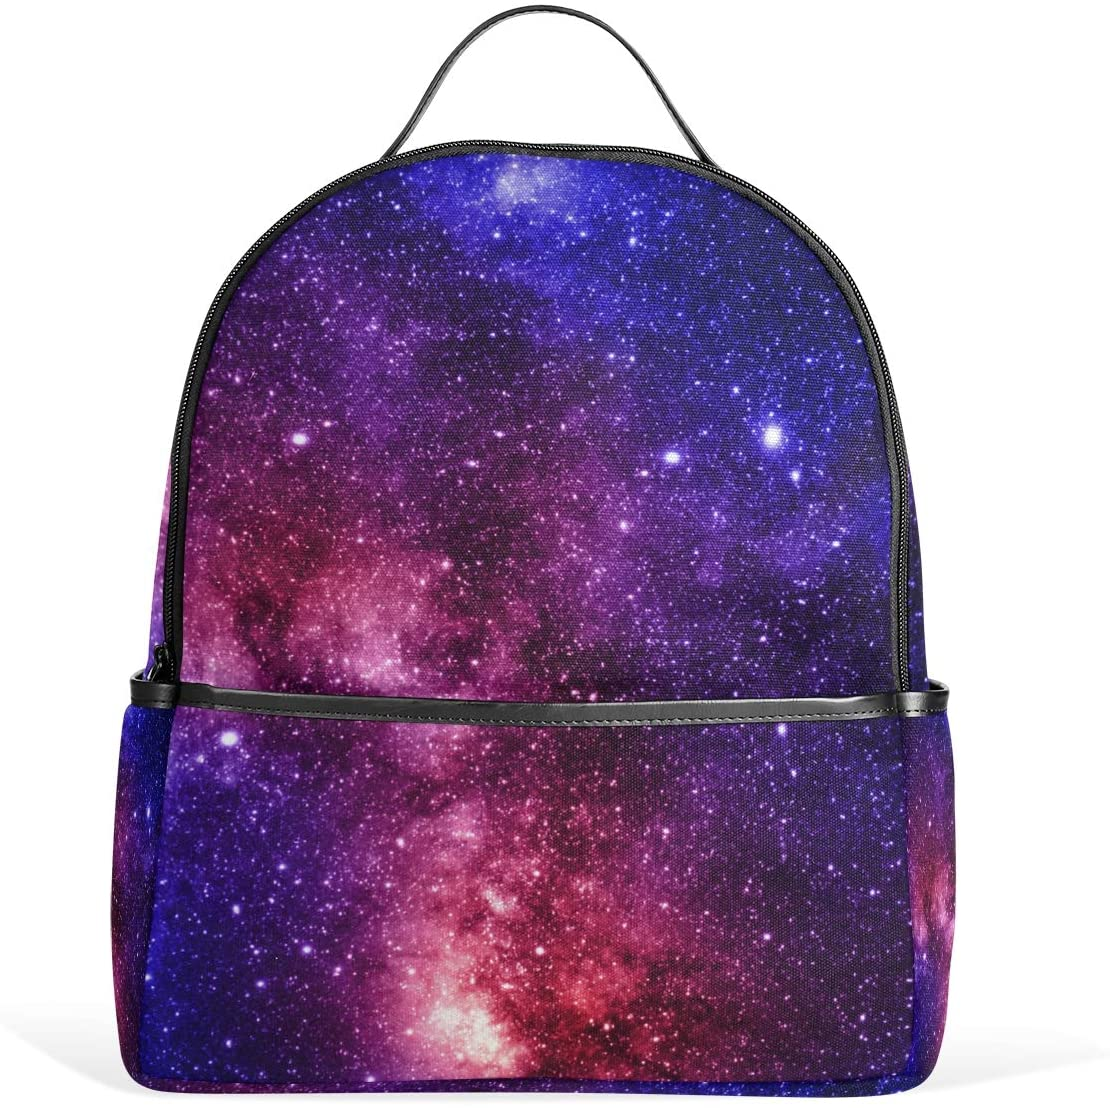 Kids' School Backpack Deep Outer Space Bookbag for Boys Girls Lightweight Casual Travel Bag Large Capacity Daypack